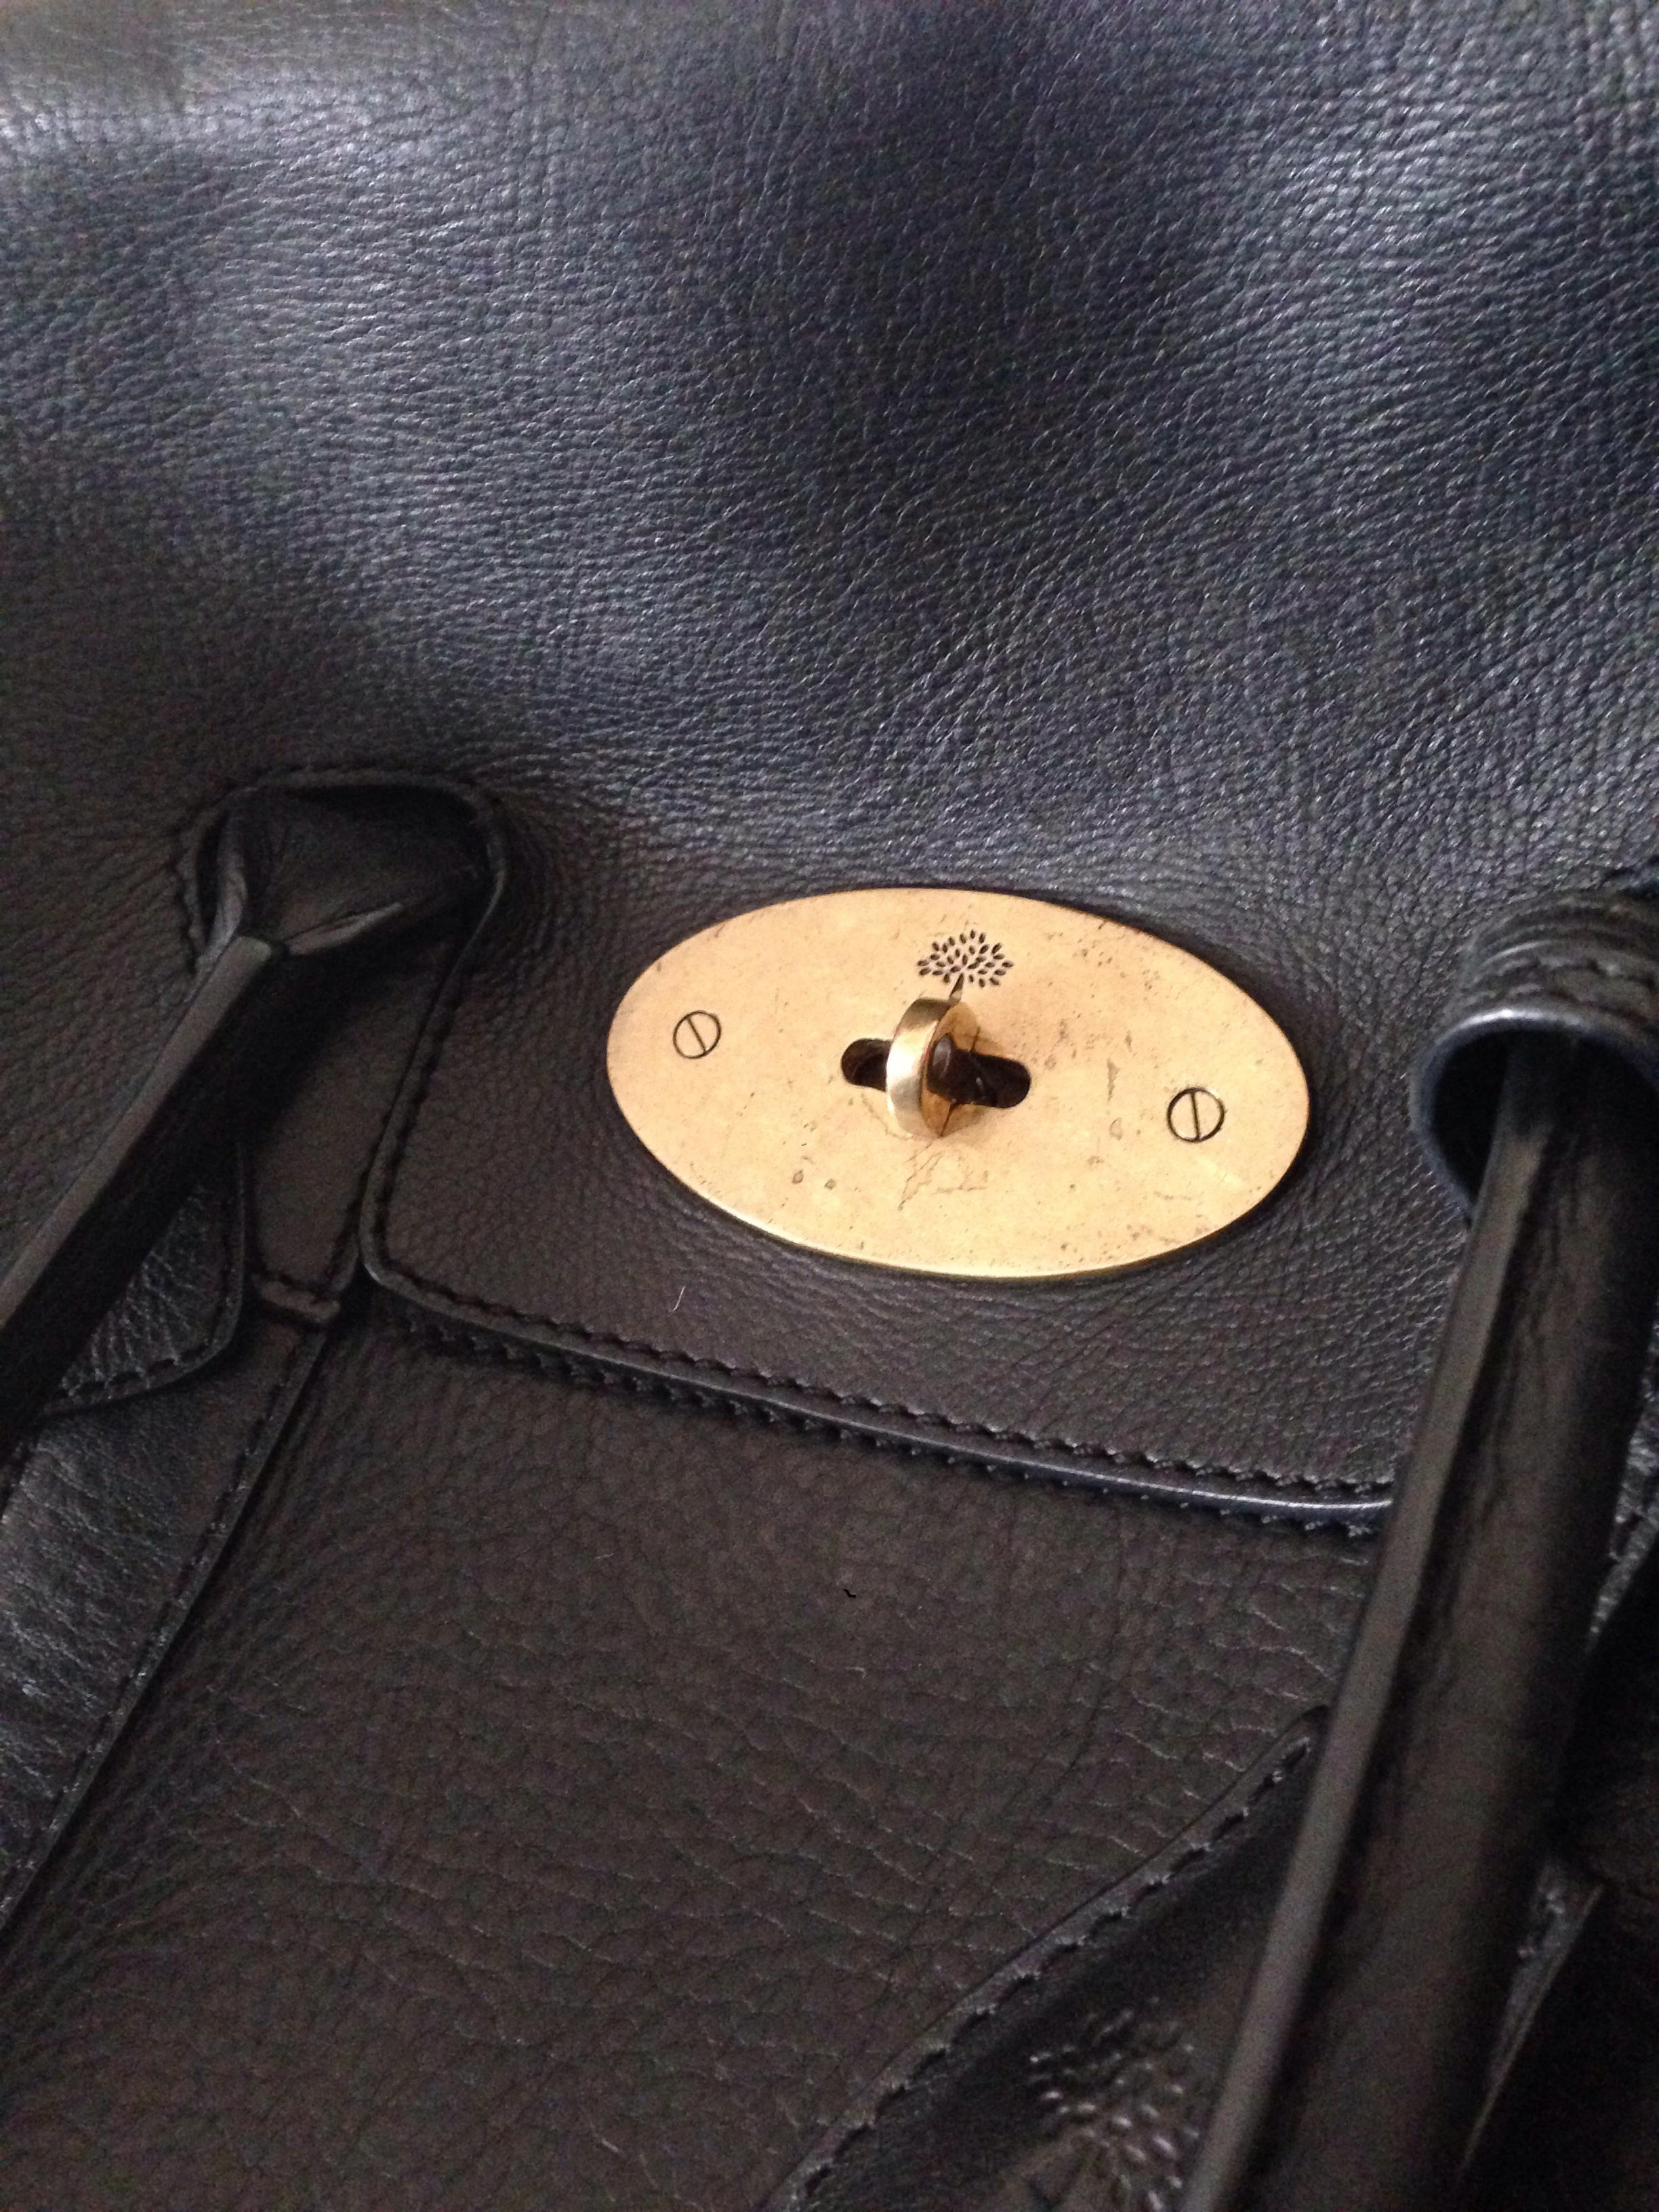 ... purchase mulberry bayswater handbag in black pebbled leather hewi  london 972ee e6039 74950973ac636